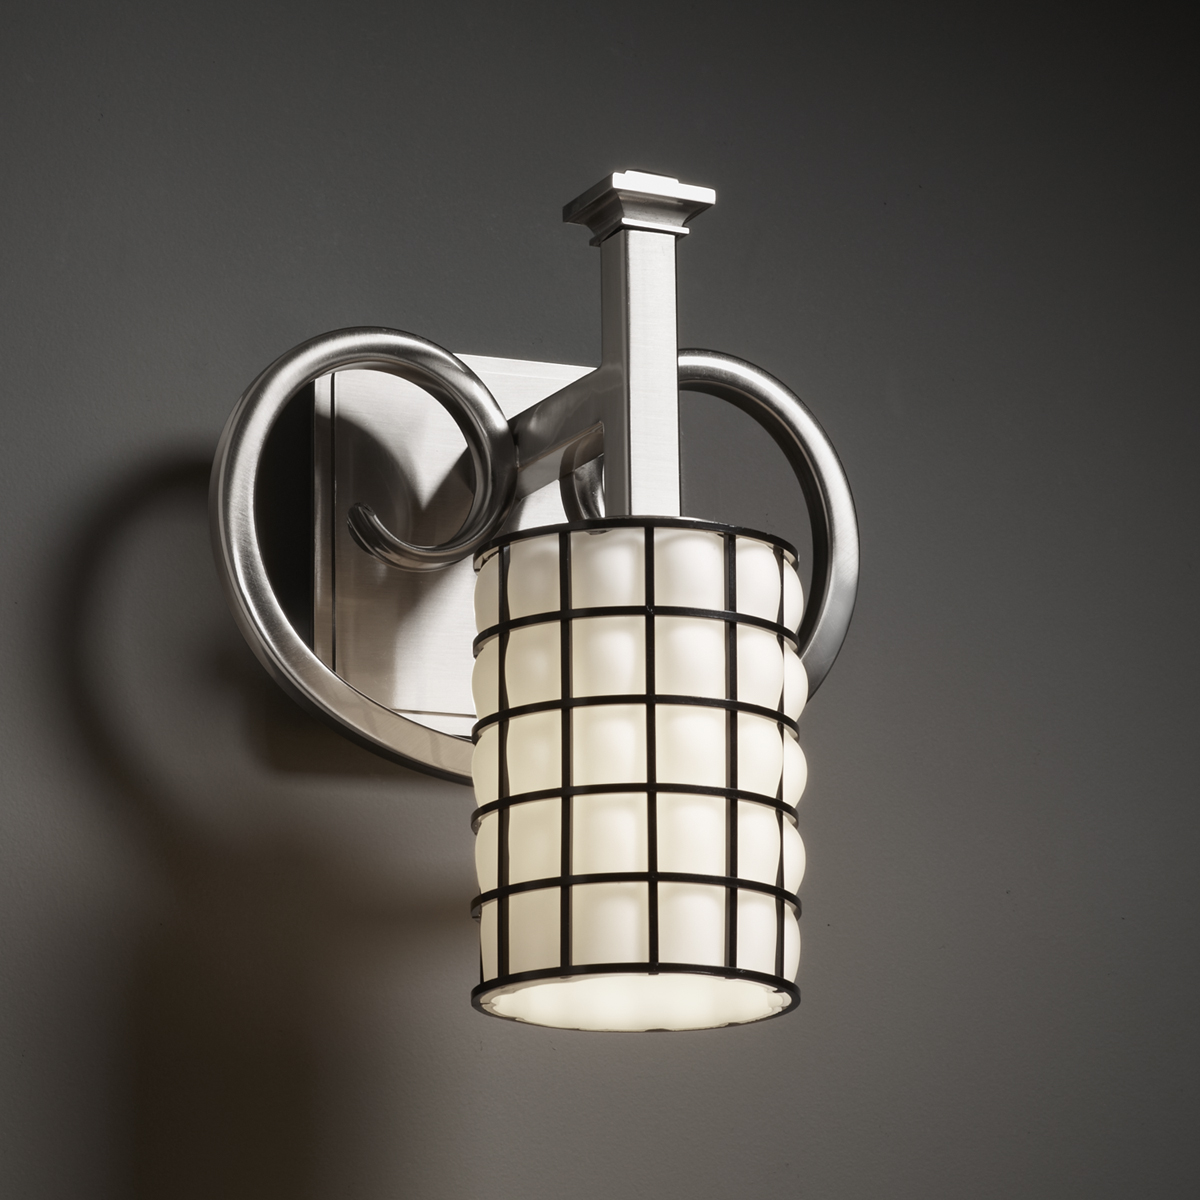 Justice Design (WGL-8581) Heritage 1-Light Wall Sconce from the Wire Glass Collection